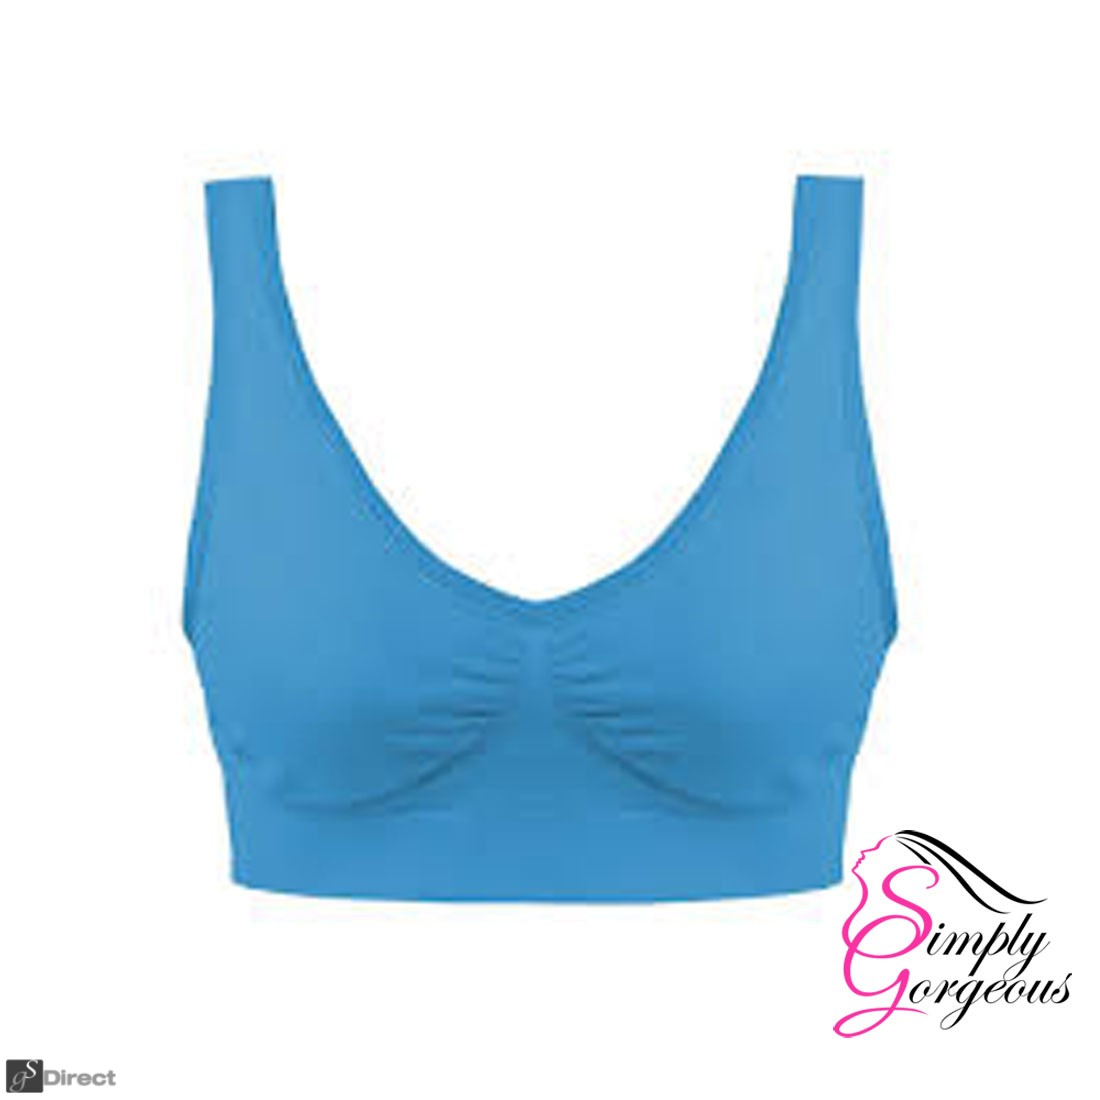 Simply Gorgeous Ultra Comfort Seamless Sport Style Bra - Blue - M